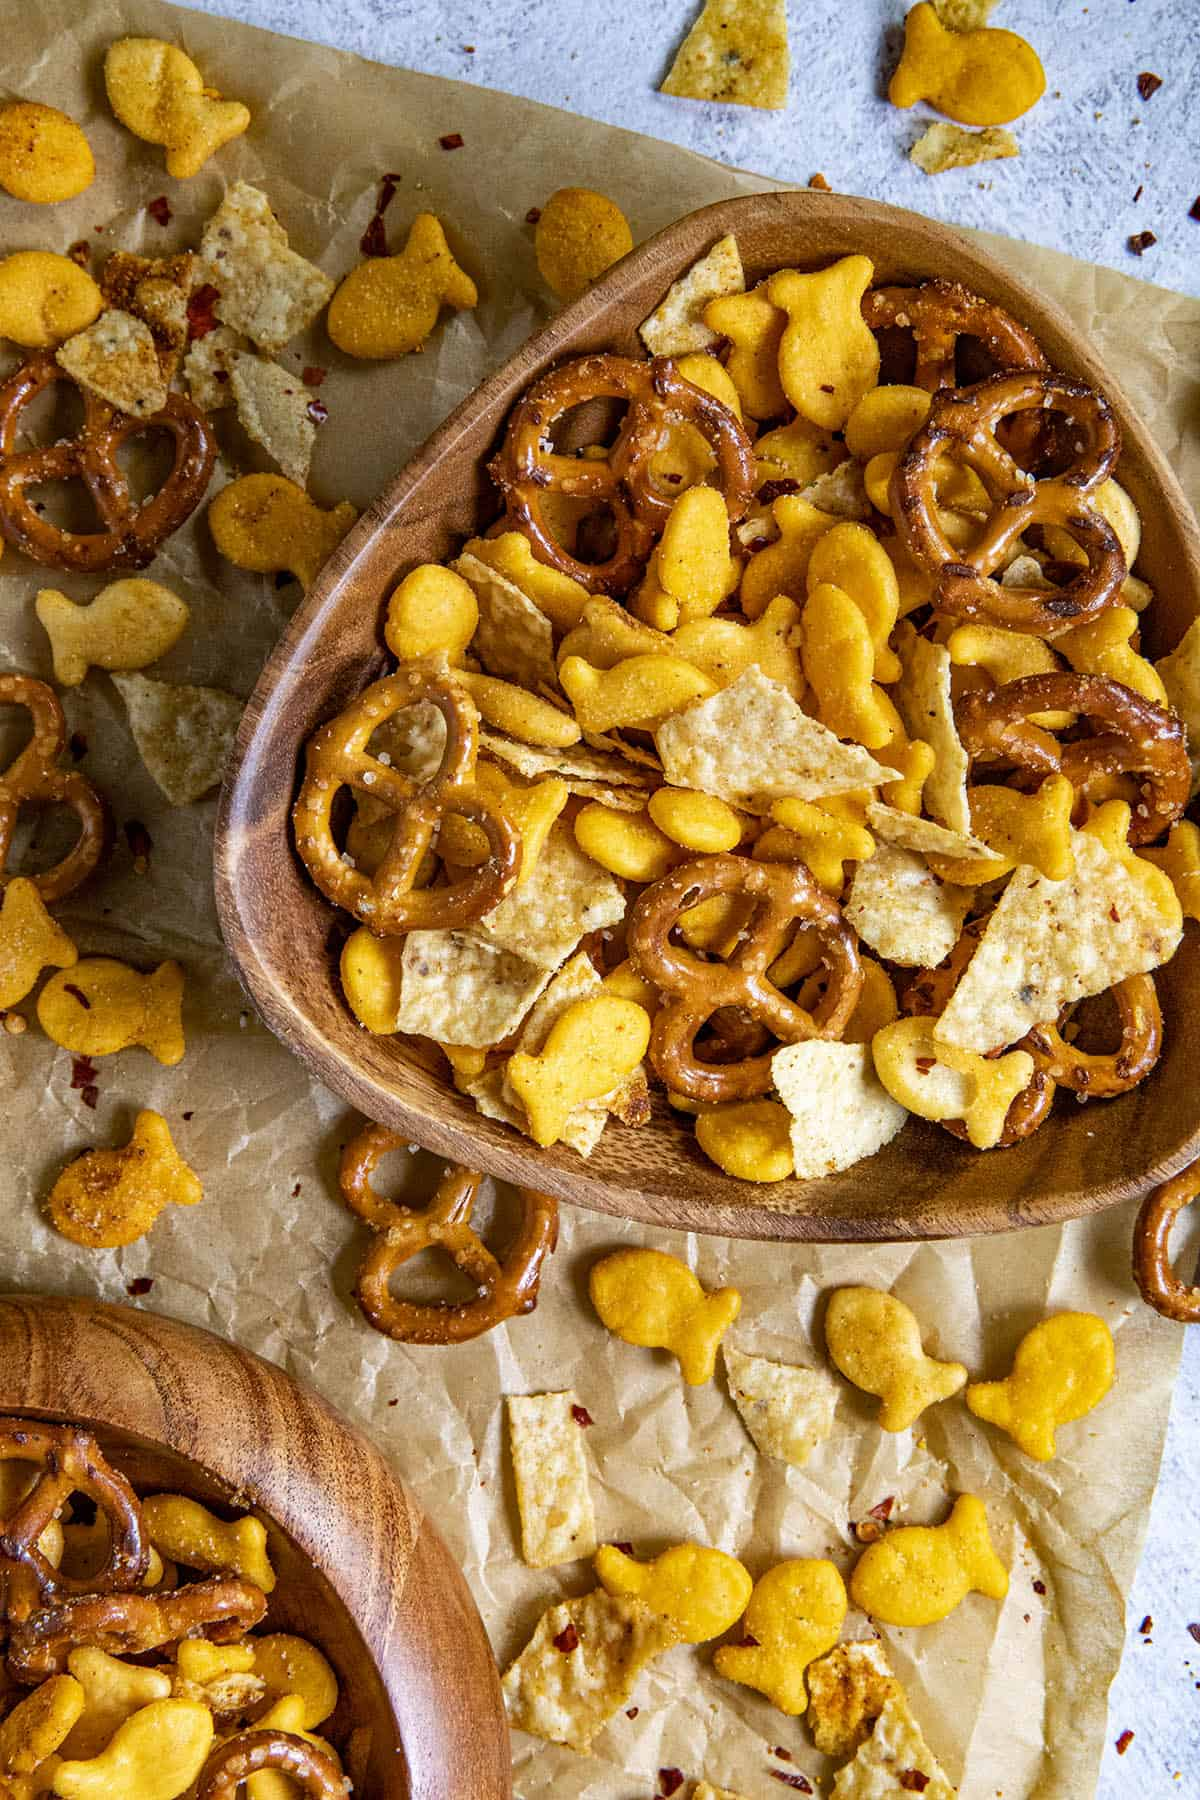 Lots of crunchy Spicy Snack Mix